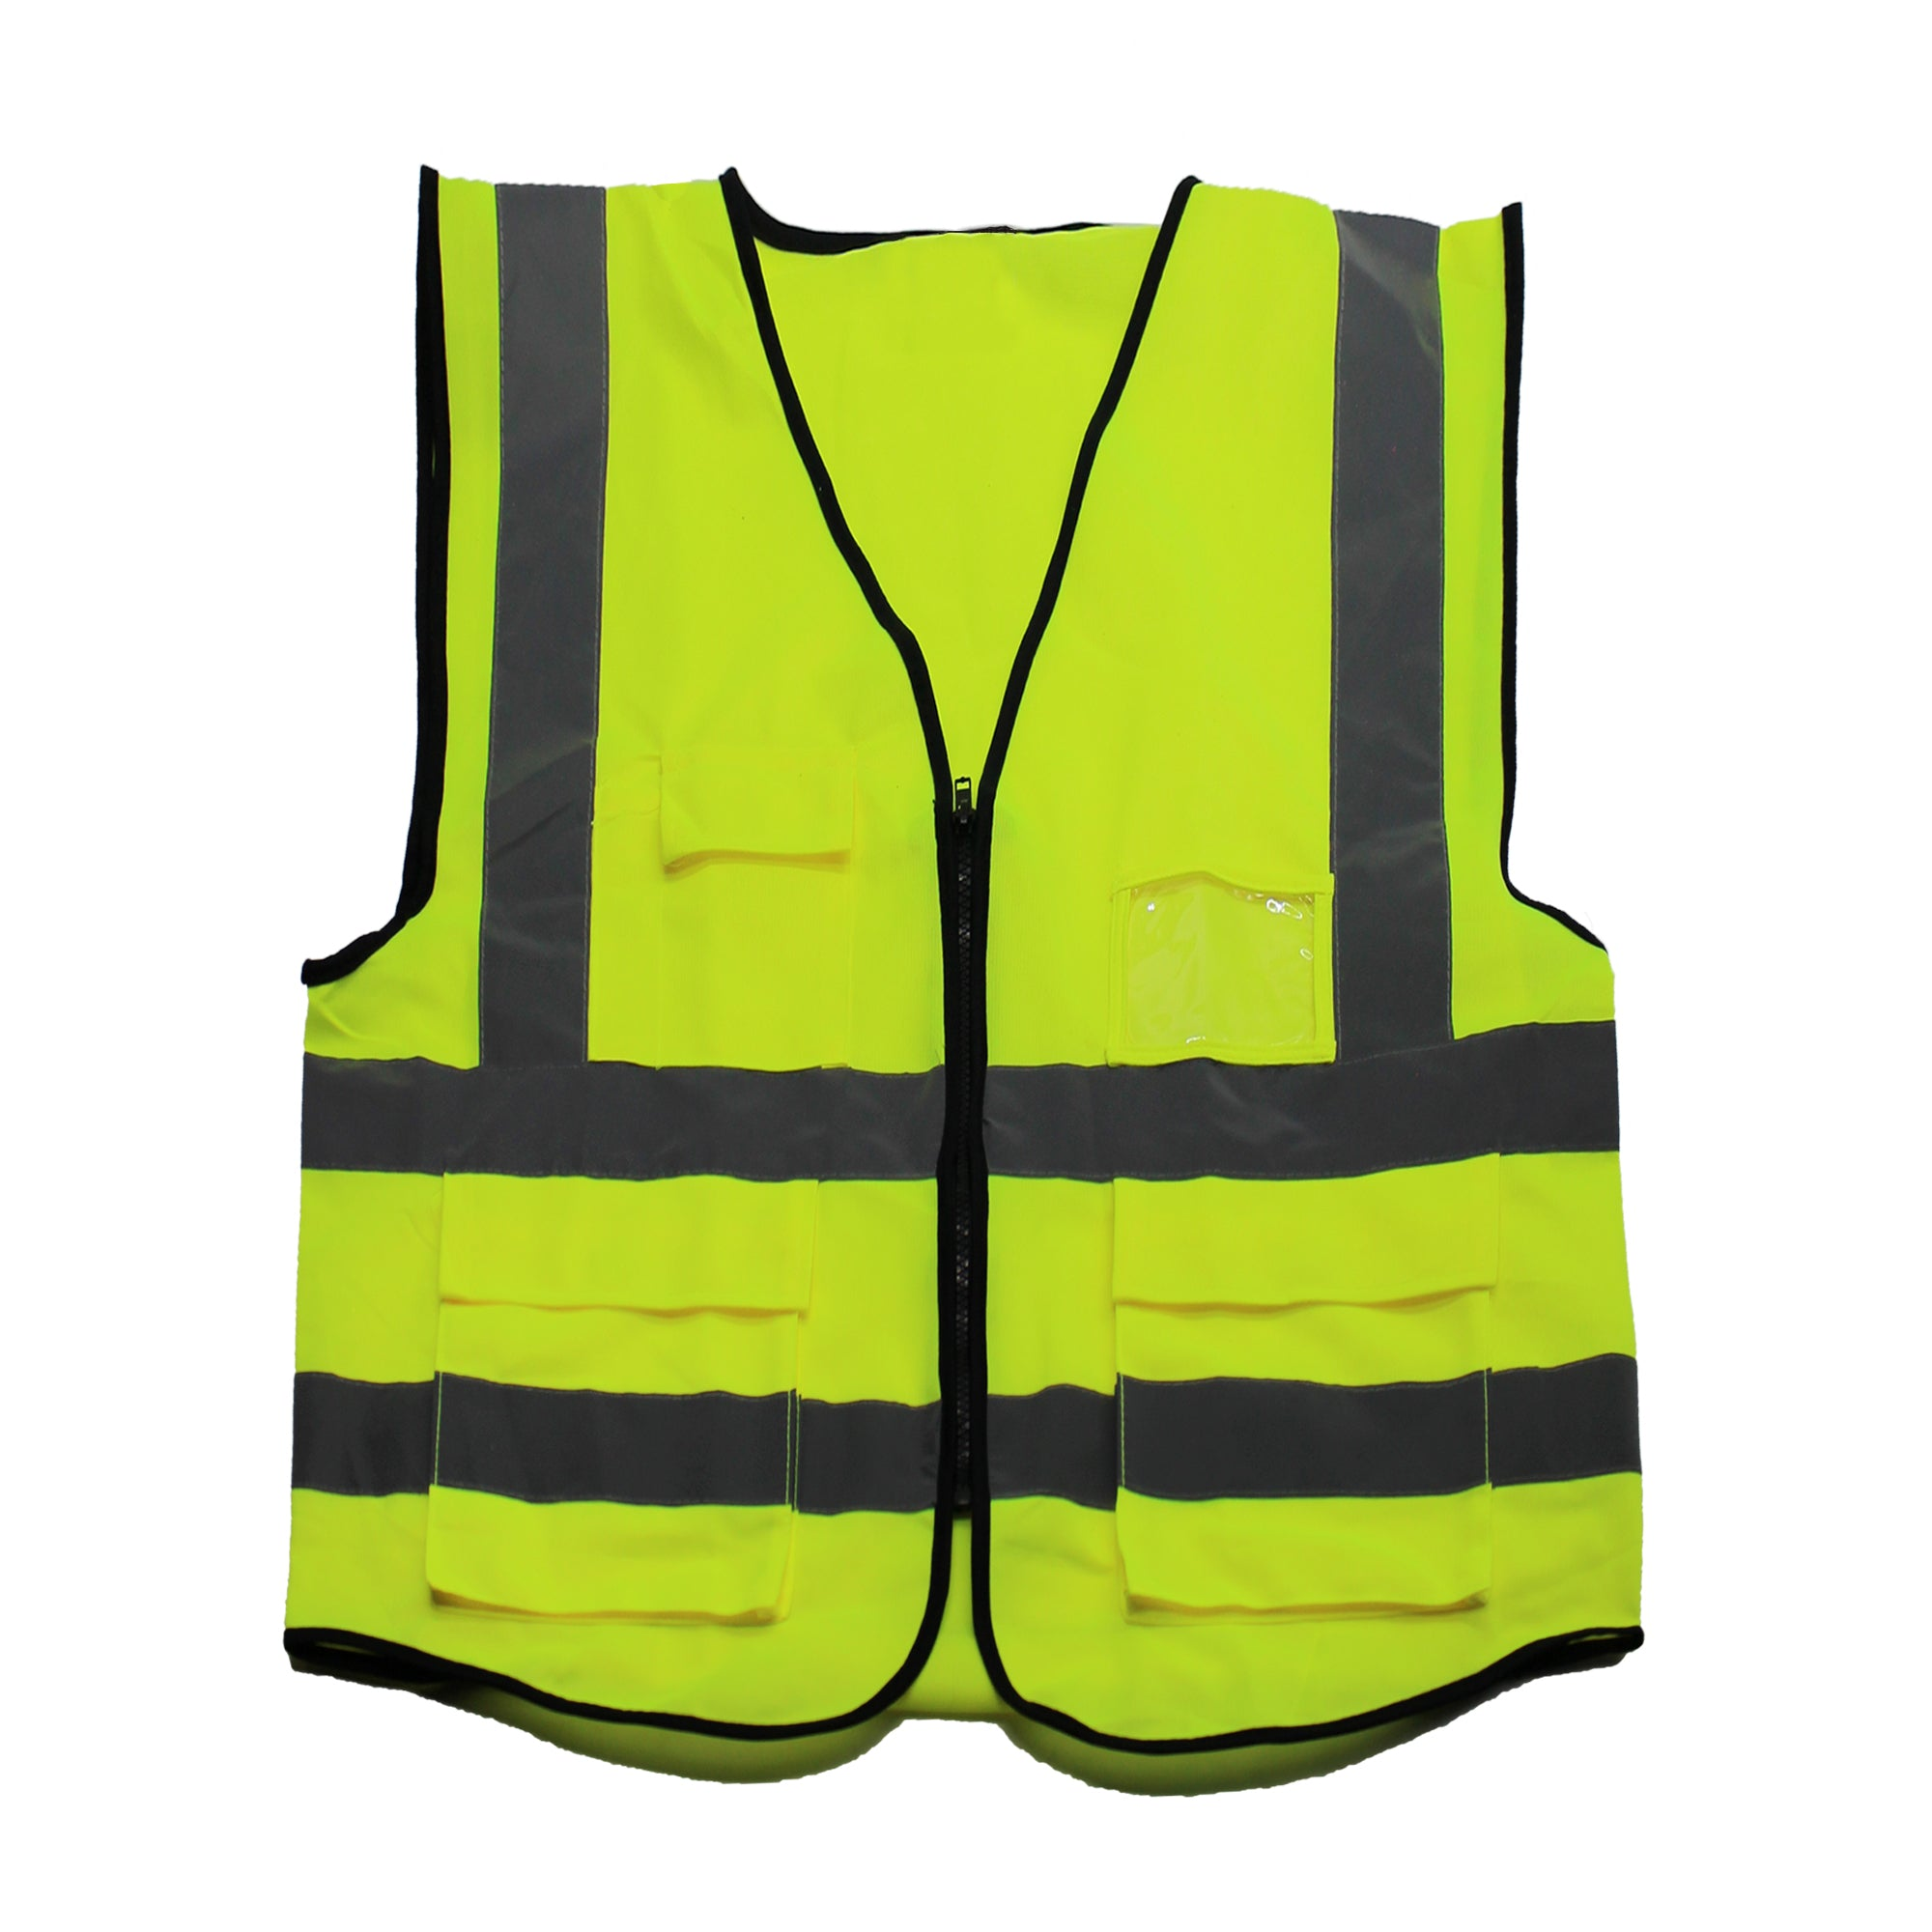 Yellow safety vest with reflective strips and front pockets